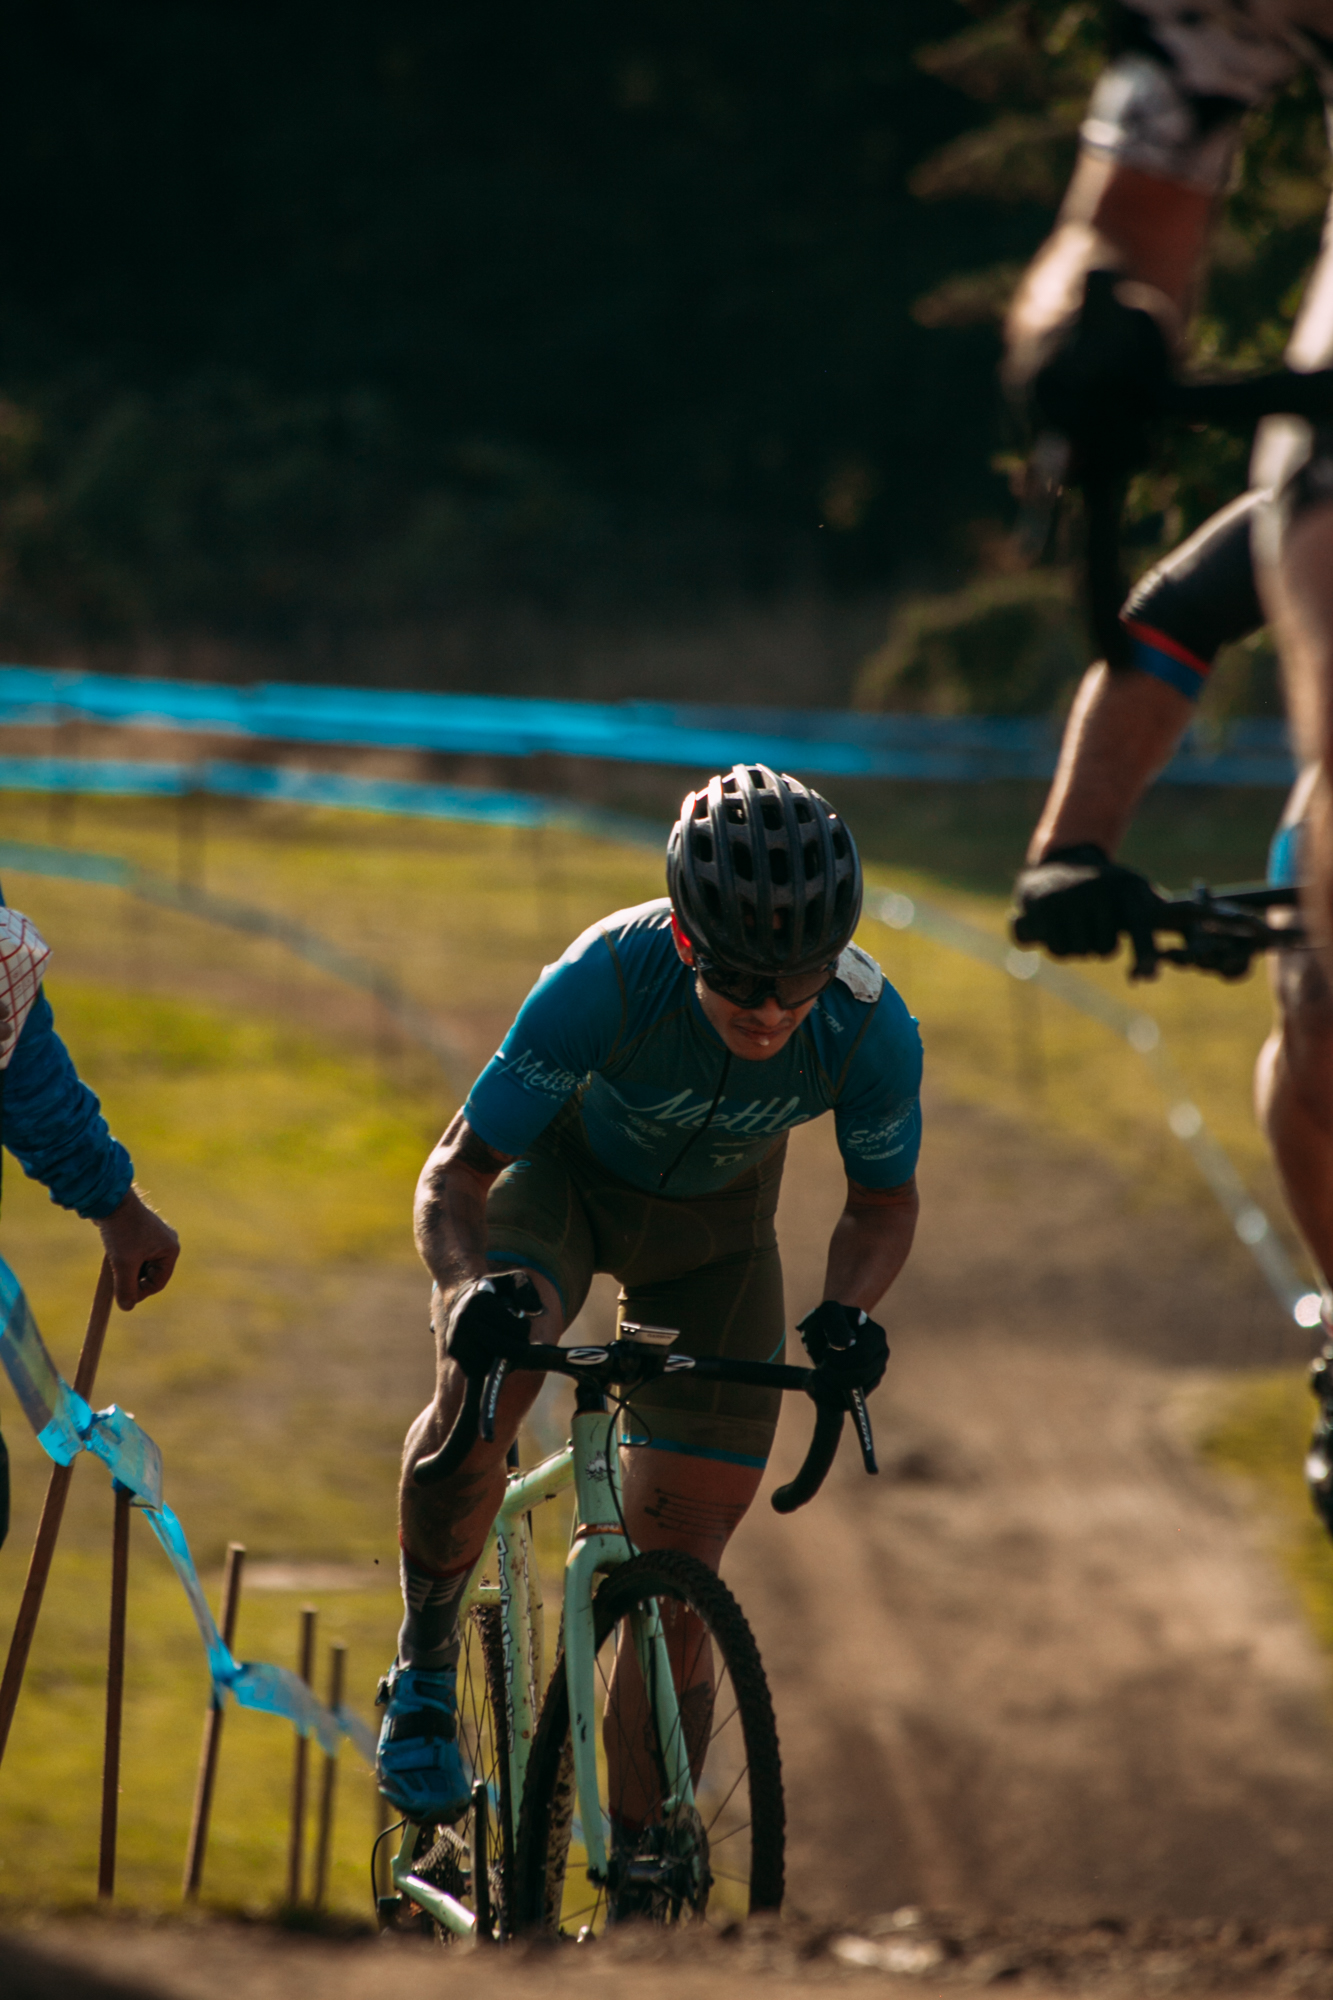 Cyclocross18_CCCX_RainierHS-197-mettlecycling.jpg